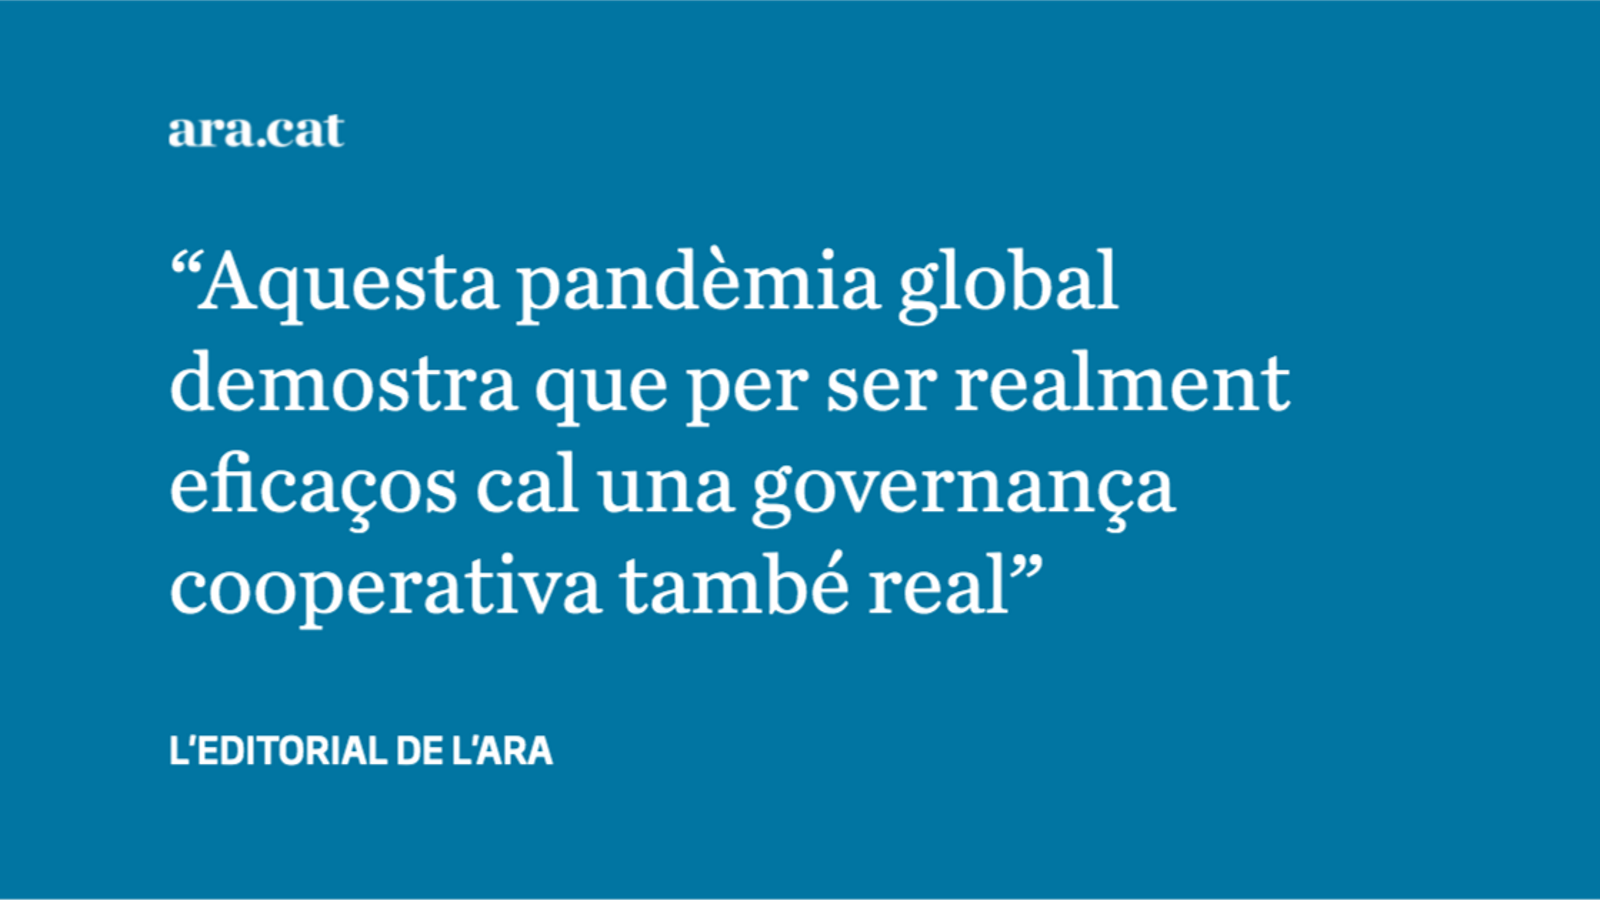 Una pandèmia global que ha portat a un confinament global